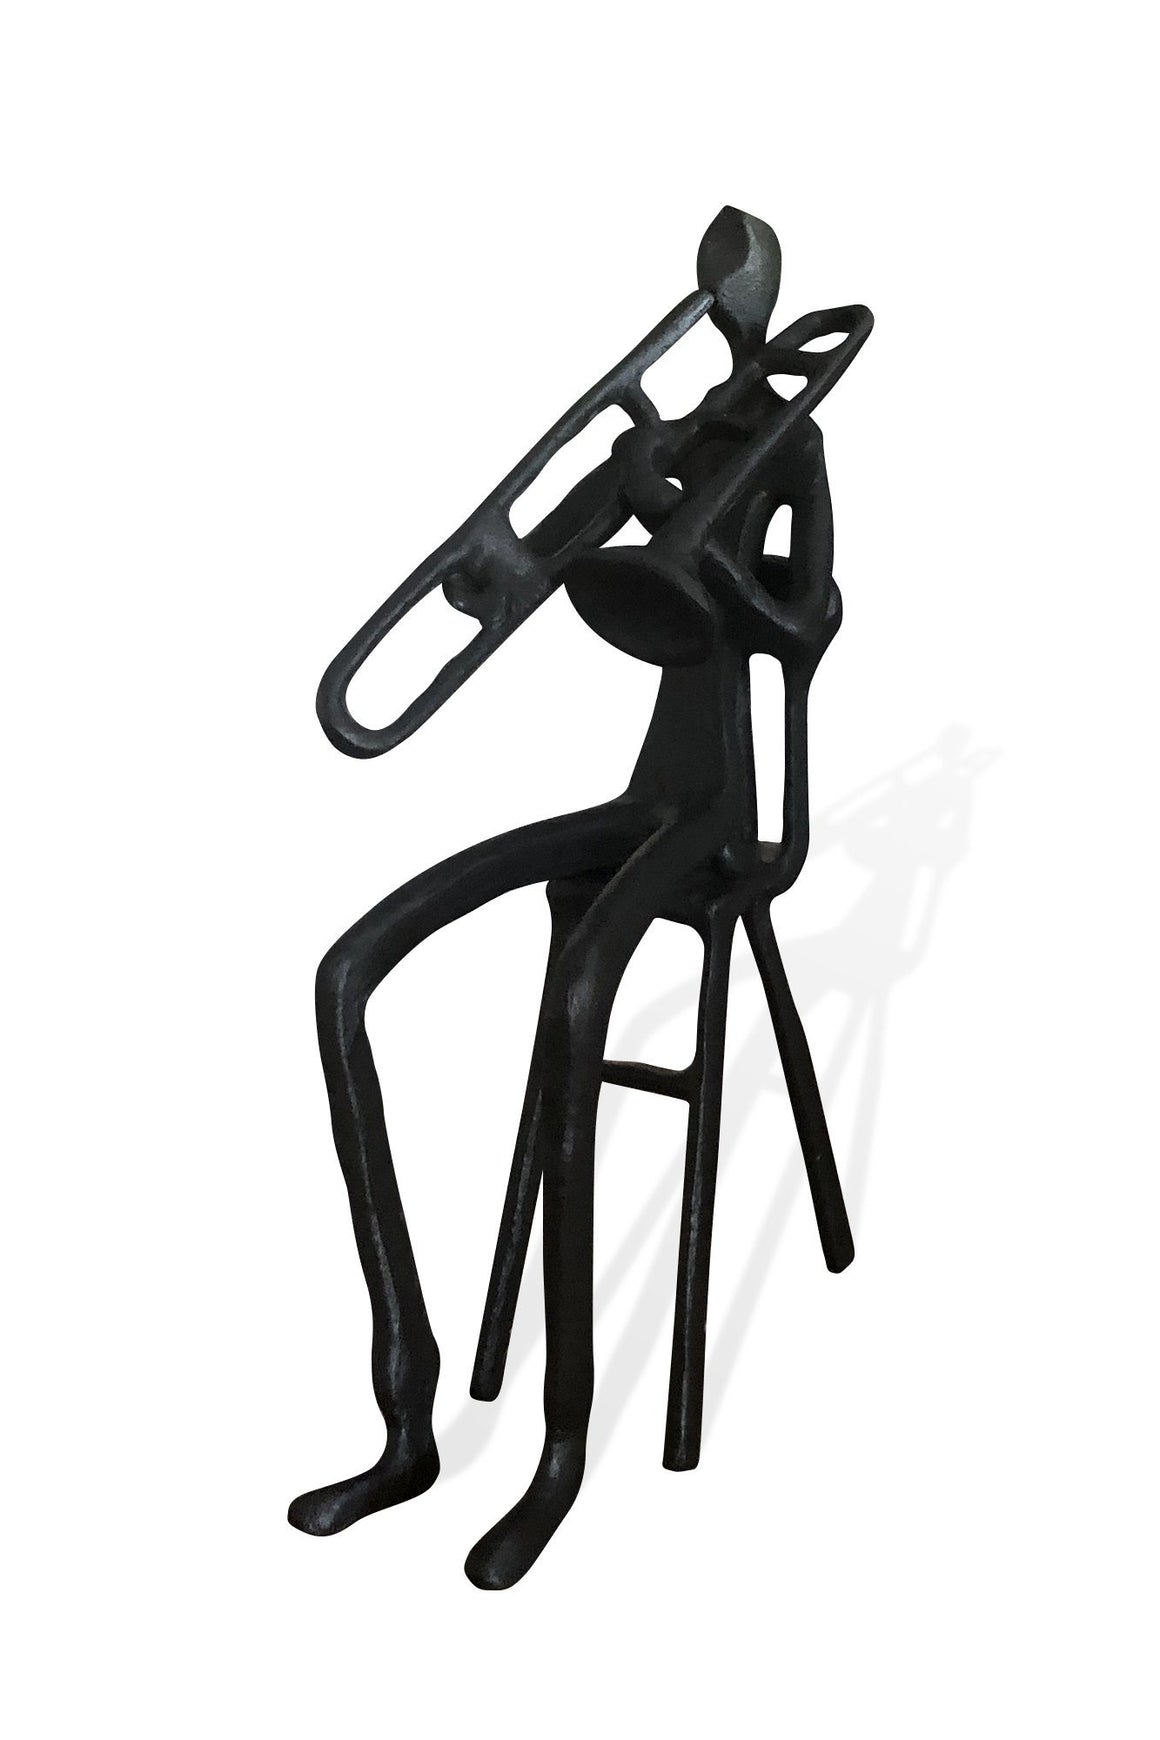 Musician Sitting Playing Trombone Figurine - Cast Iron - Abstract Sculpture-Rustic Deco Incorporated